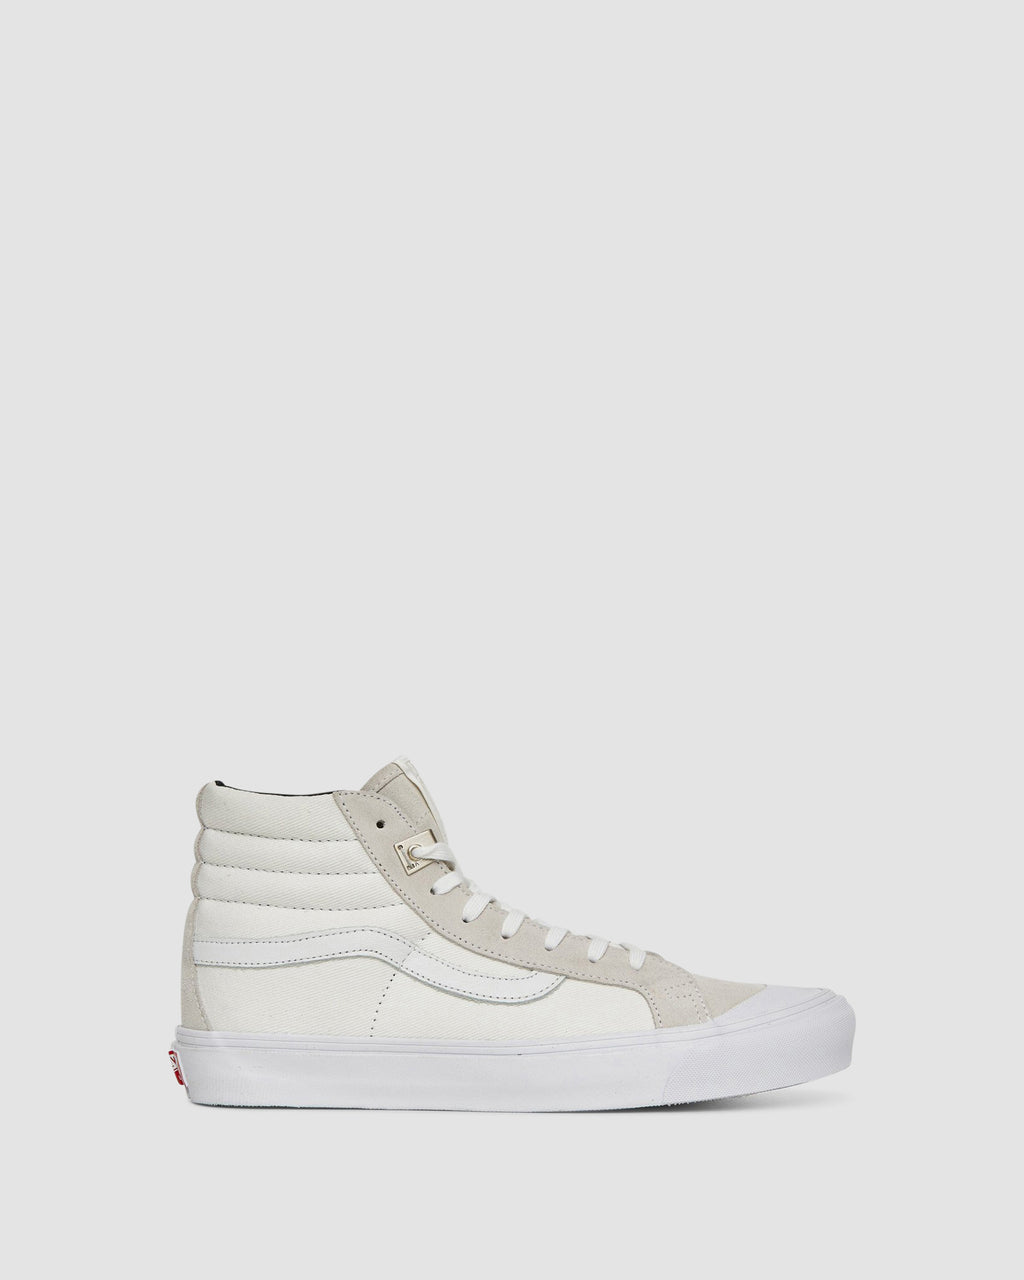 VANS OG 138 SK8 HIGH TRUE WHITE